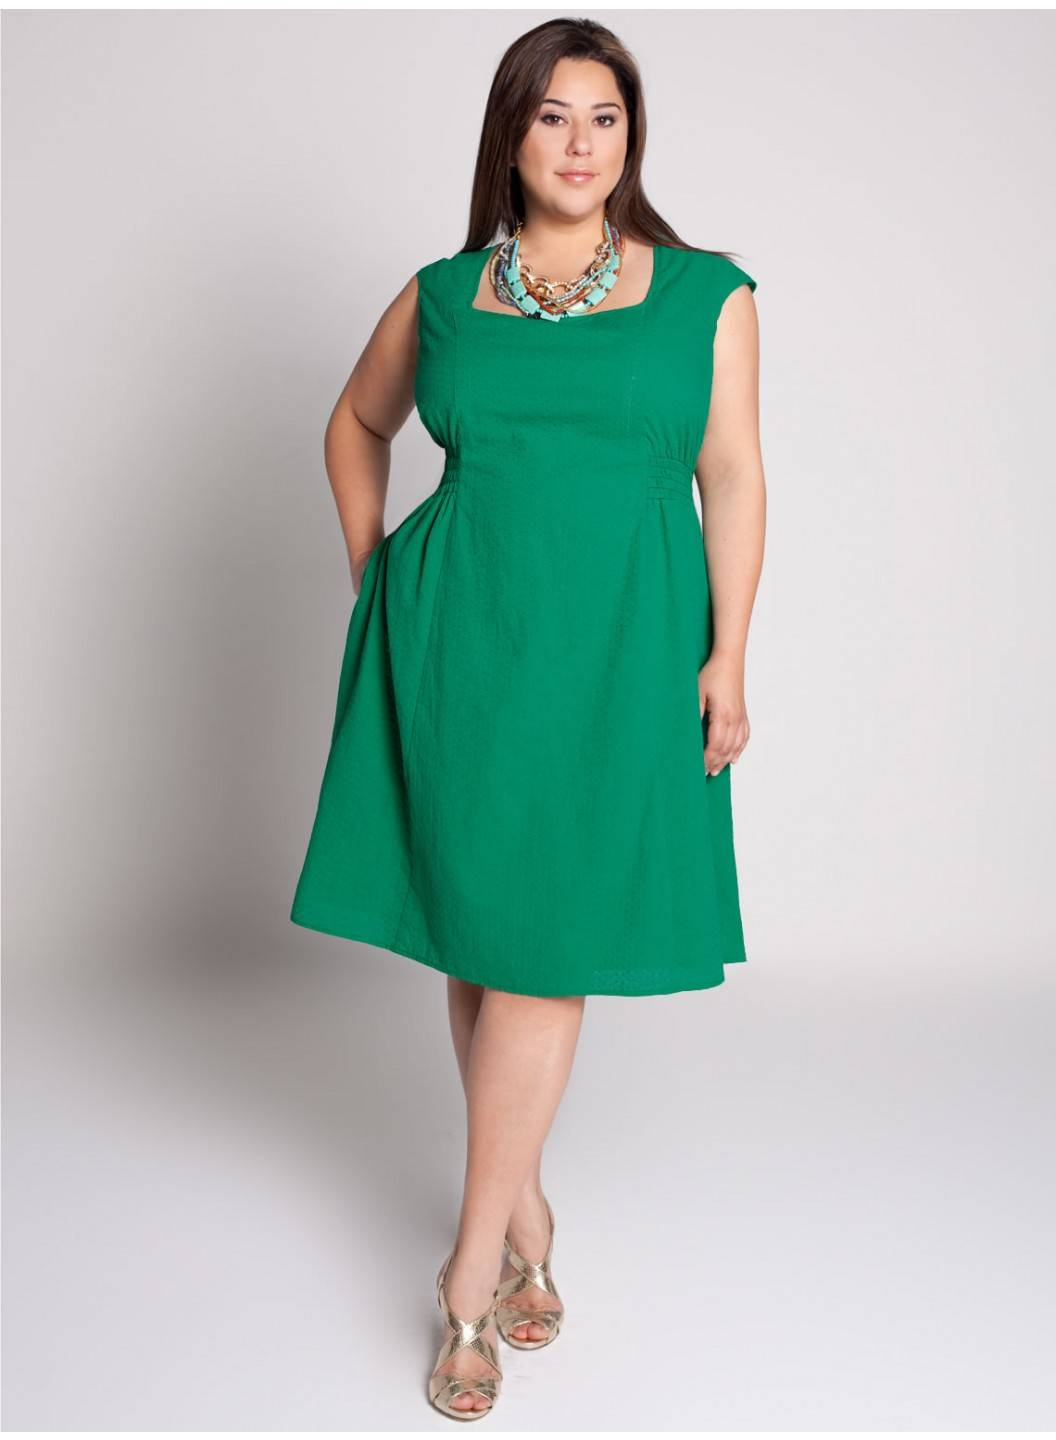 Plus Size Formal Dresses Under 100: Plus Size Summer Dresses